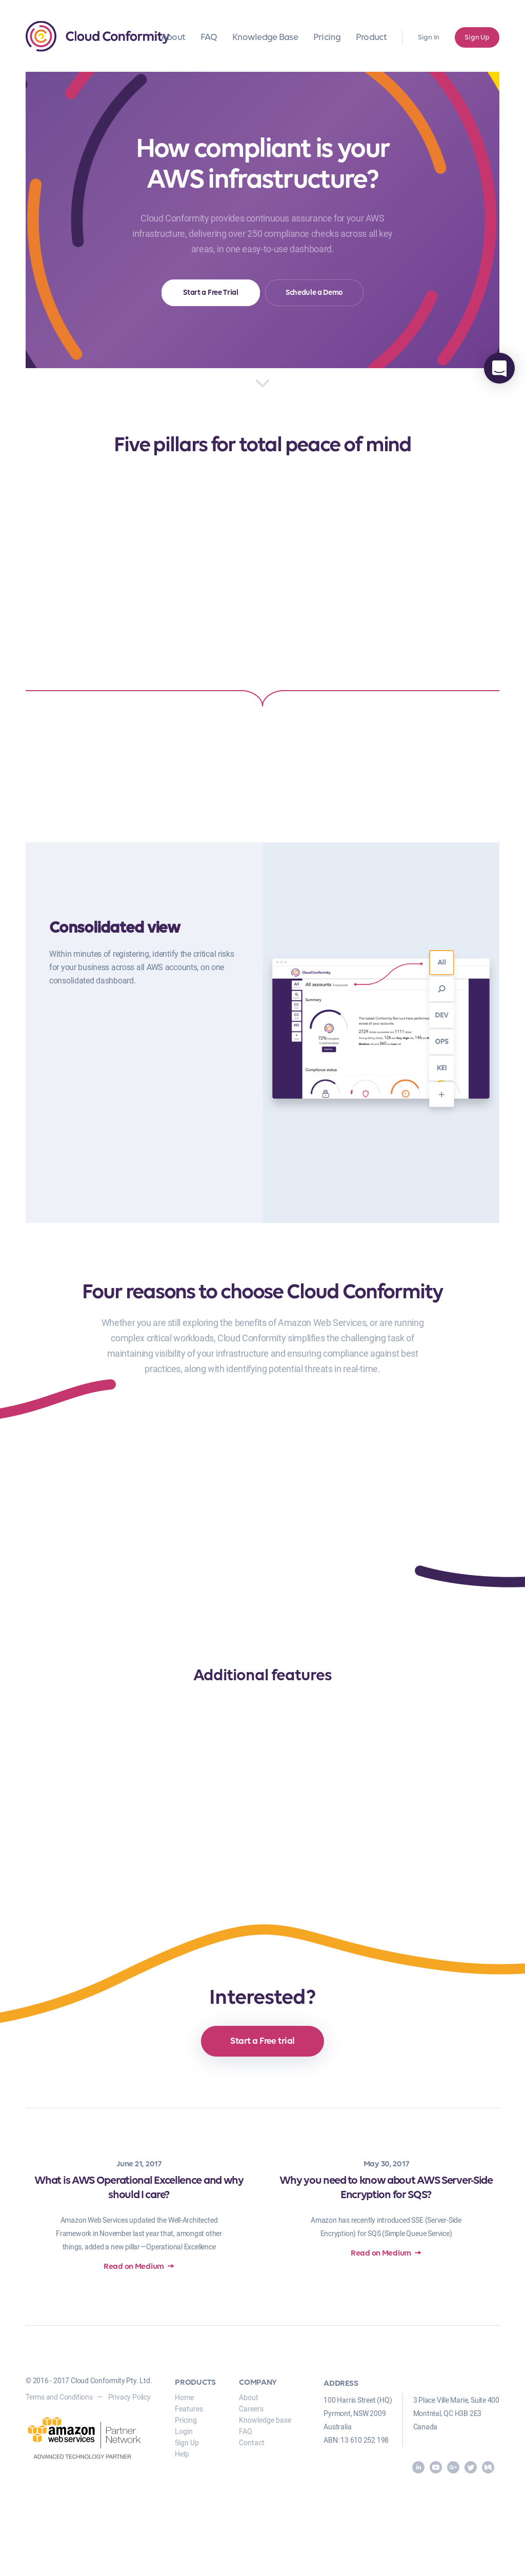 Cloud Conformity Competitors, Revenue and Employees - Owler Company